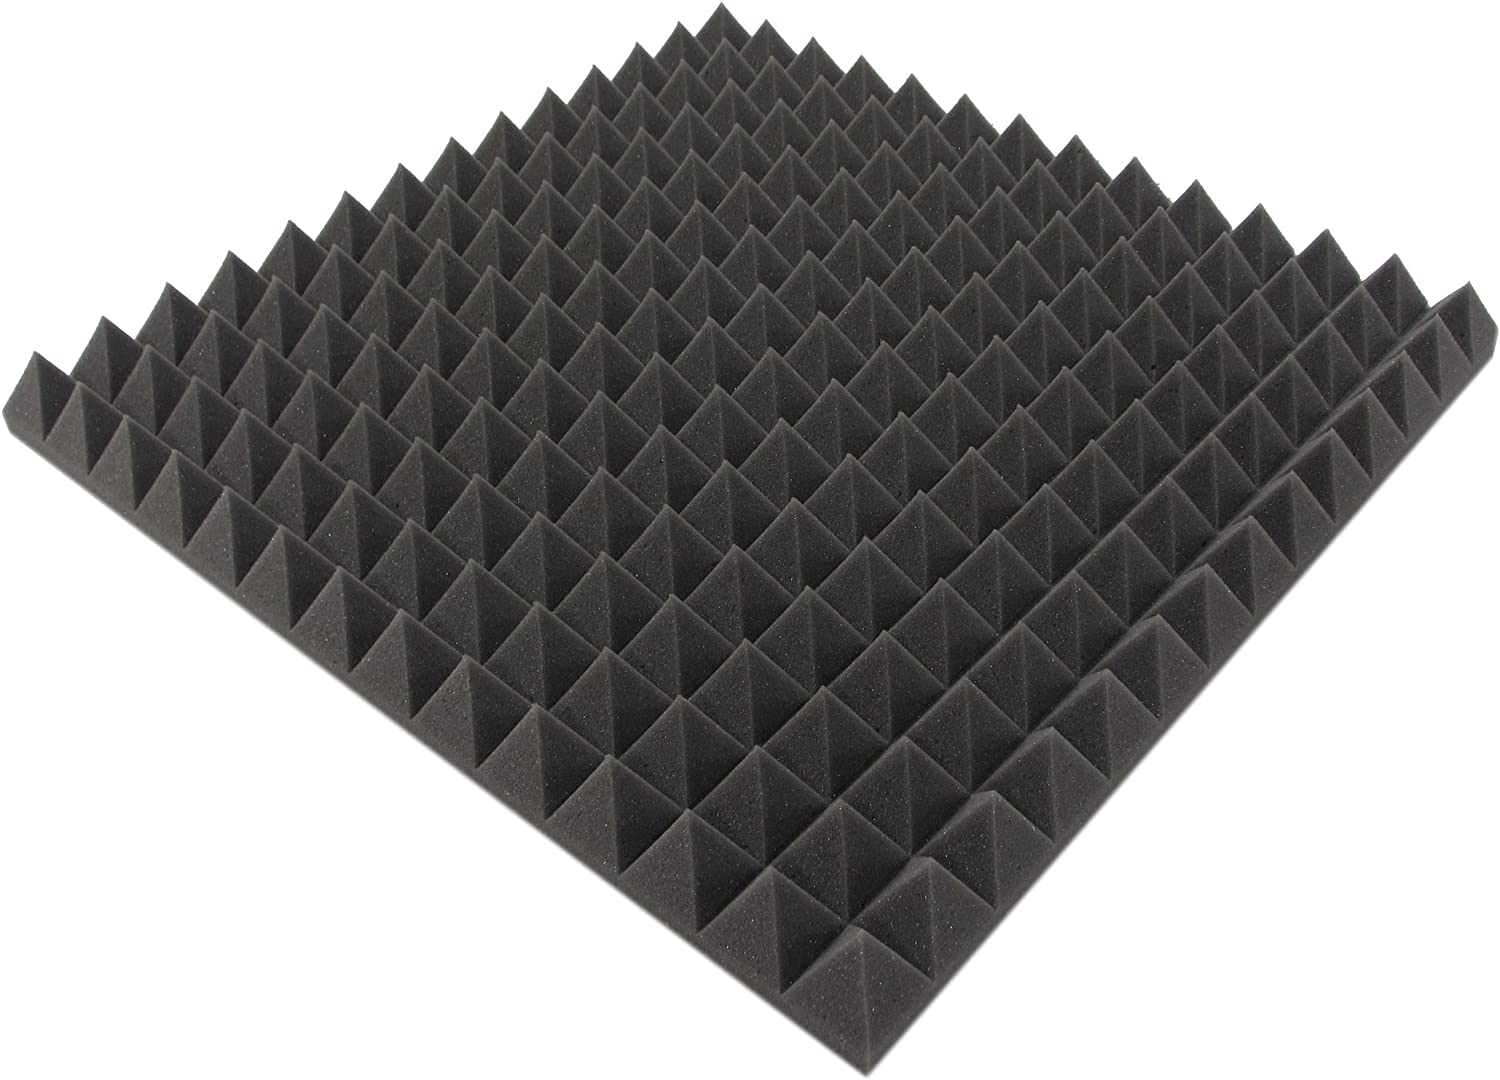 Noise Protection / 1/ M/²/  Acoustic Insulation / 4/ St / Acoustic Foam aprox Akustikpur/  Acoustic Foam Insulation Formas Acoustic Foam Pyramids 50/ cm x 50/ cm x 5/ cm/